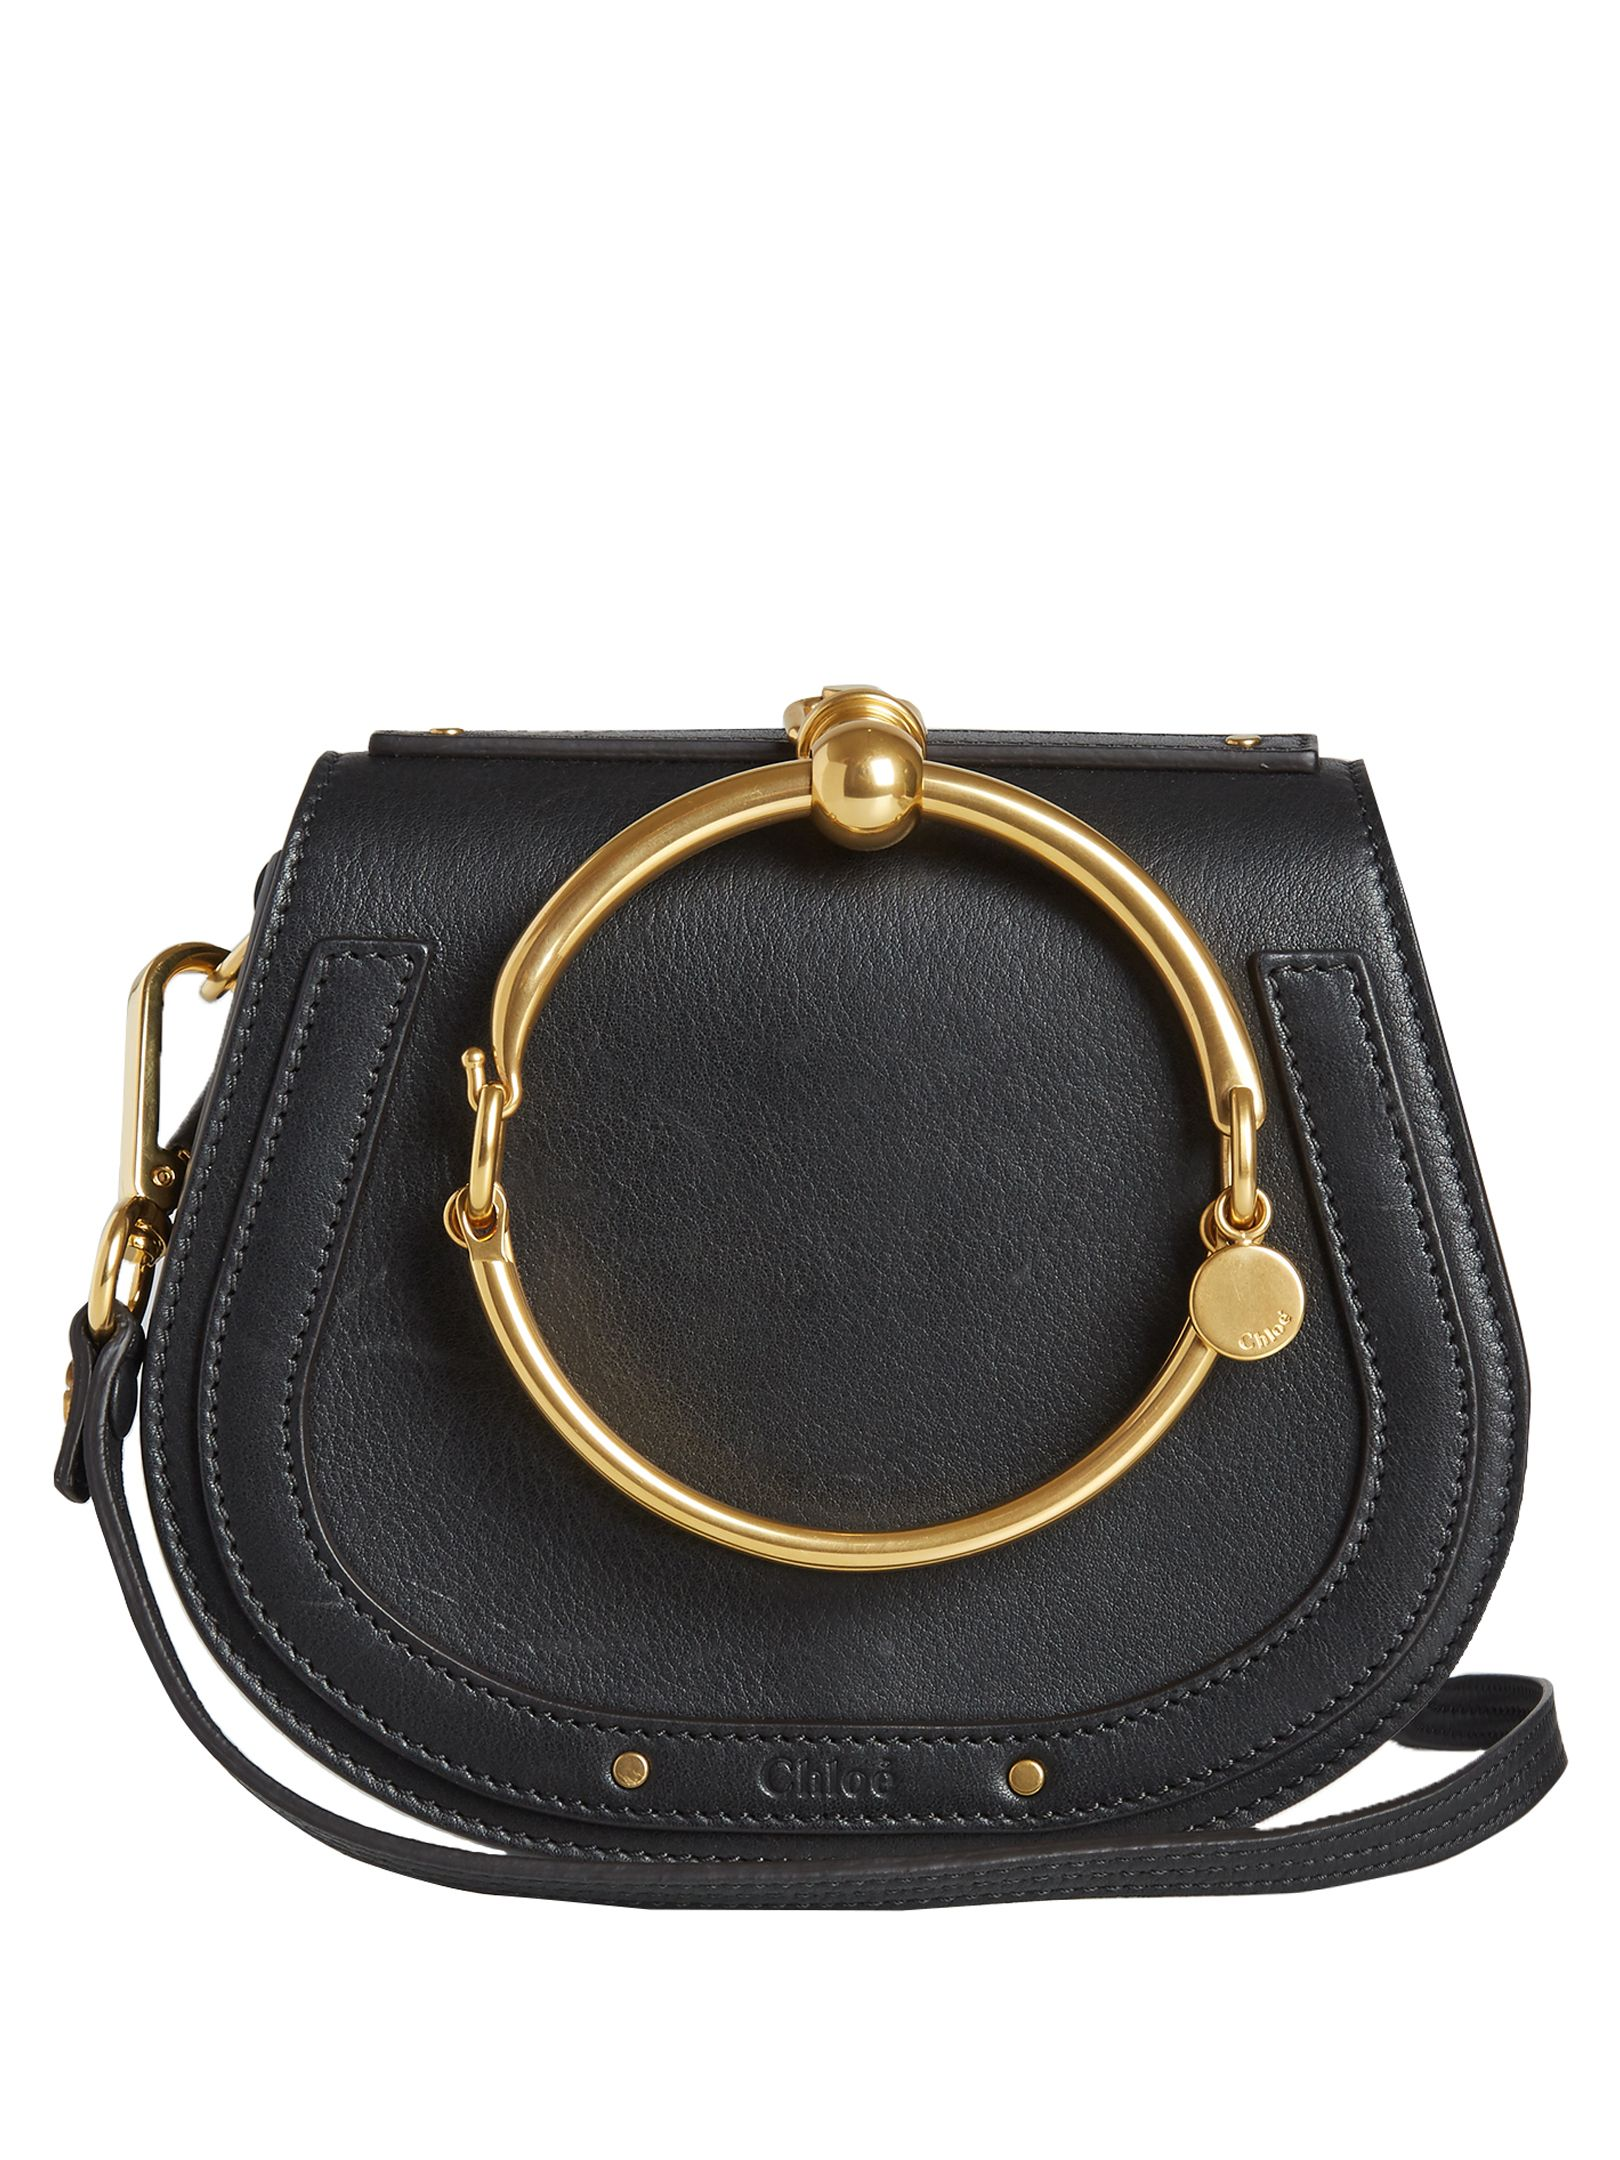 d382ed8b6b Nile small leather cross-body bag | Chloé | MATCHESFASHION.COM ...